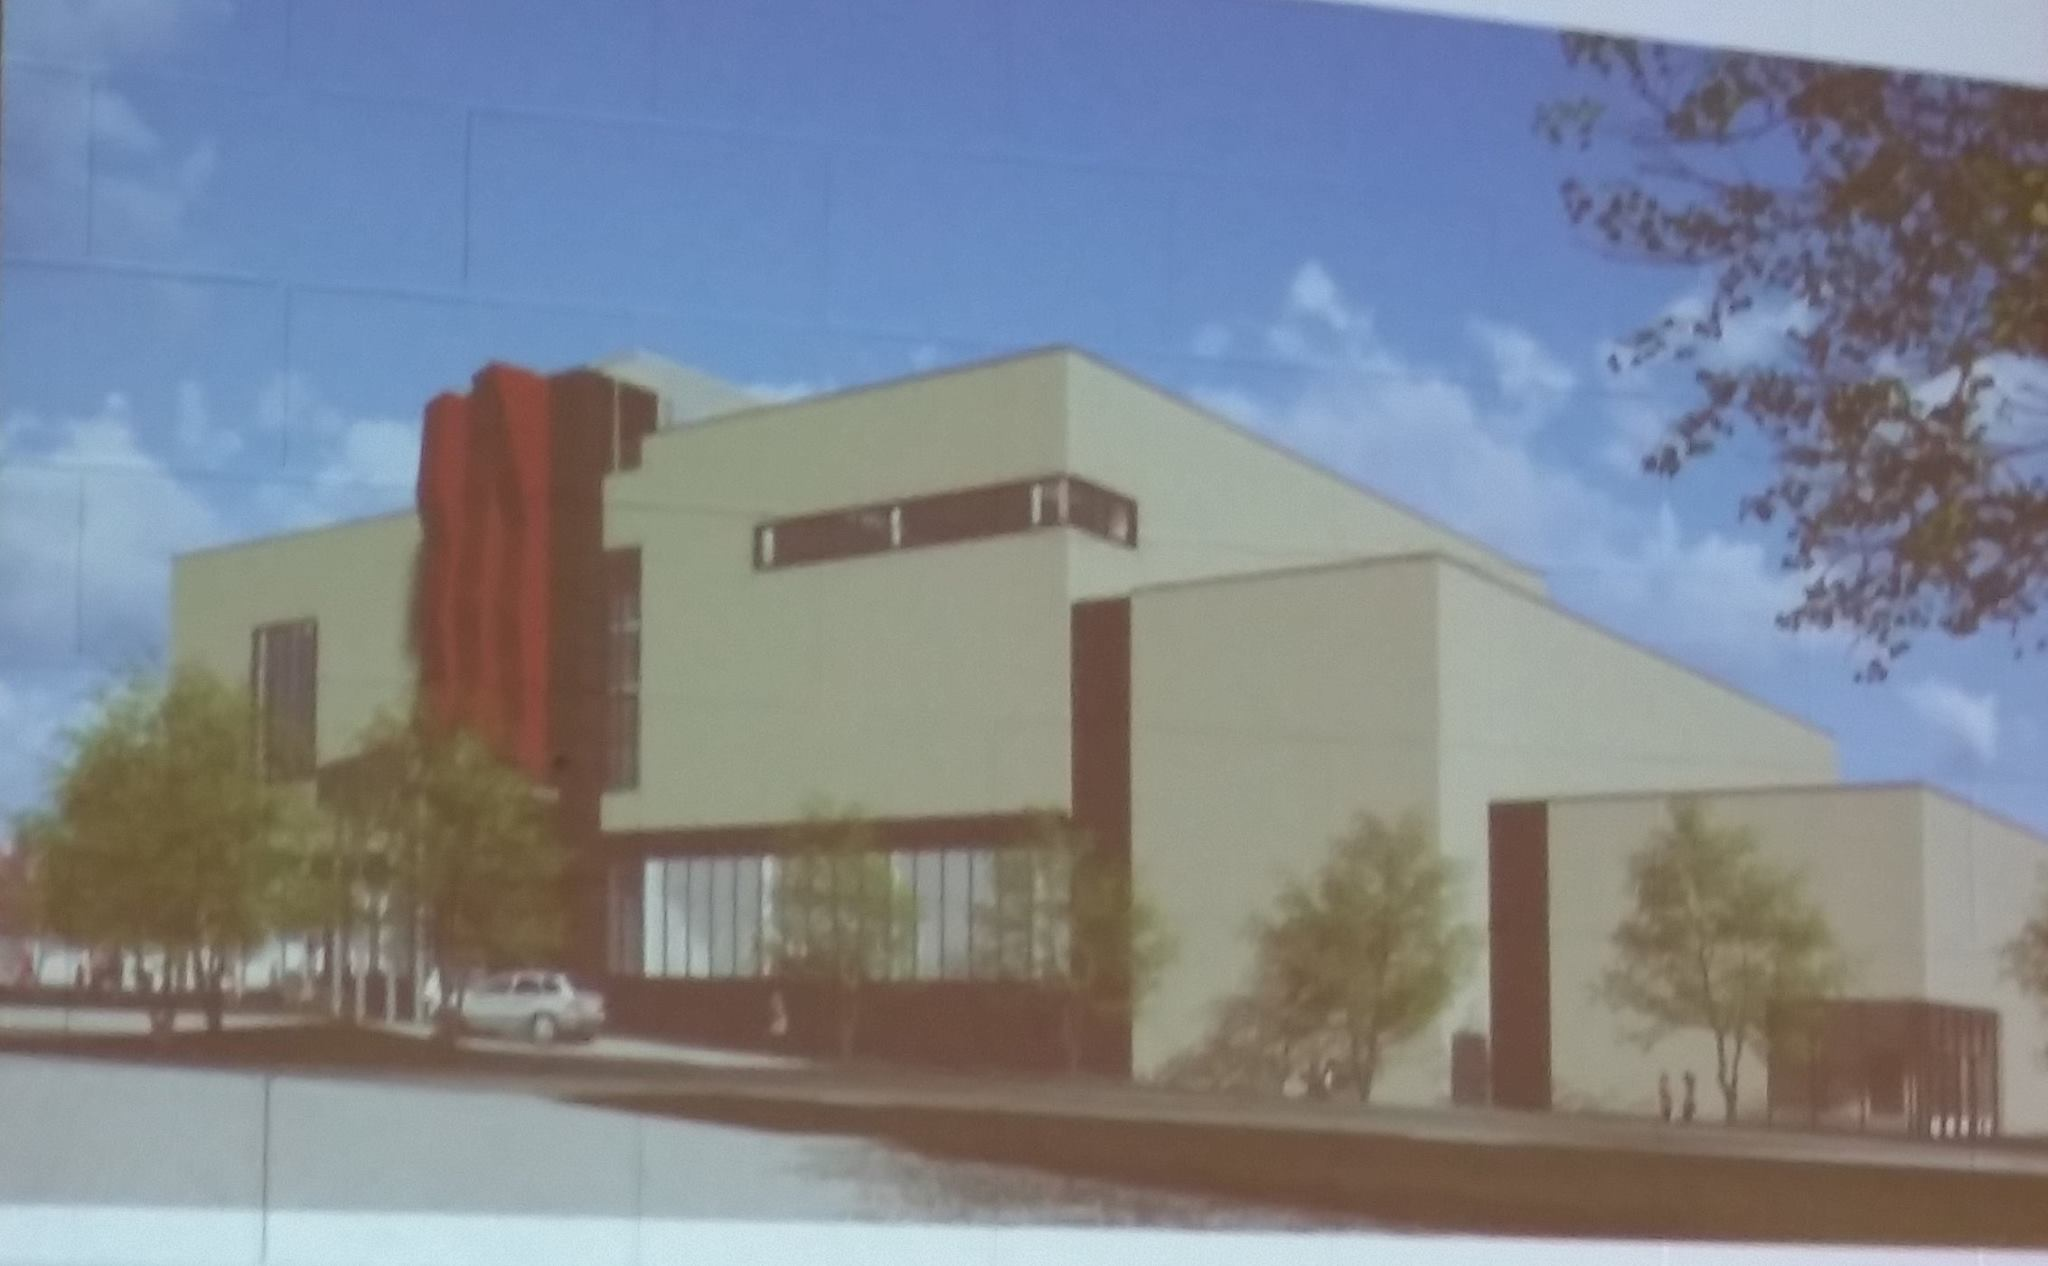 View from parking area to east of Center (red structure is climbing wall to be installed when funds are available).